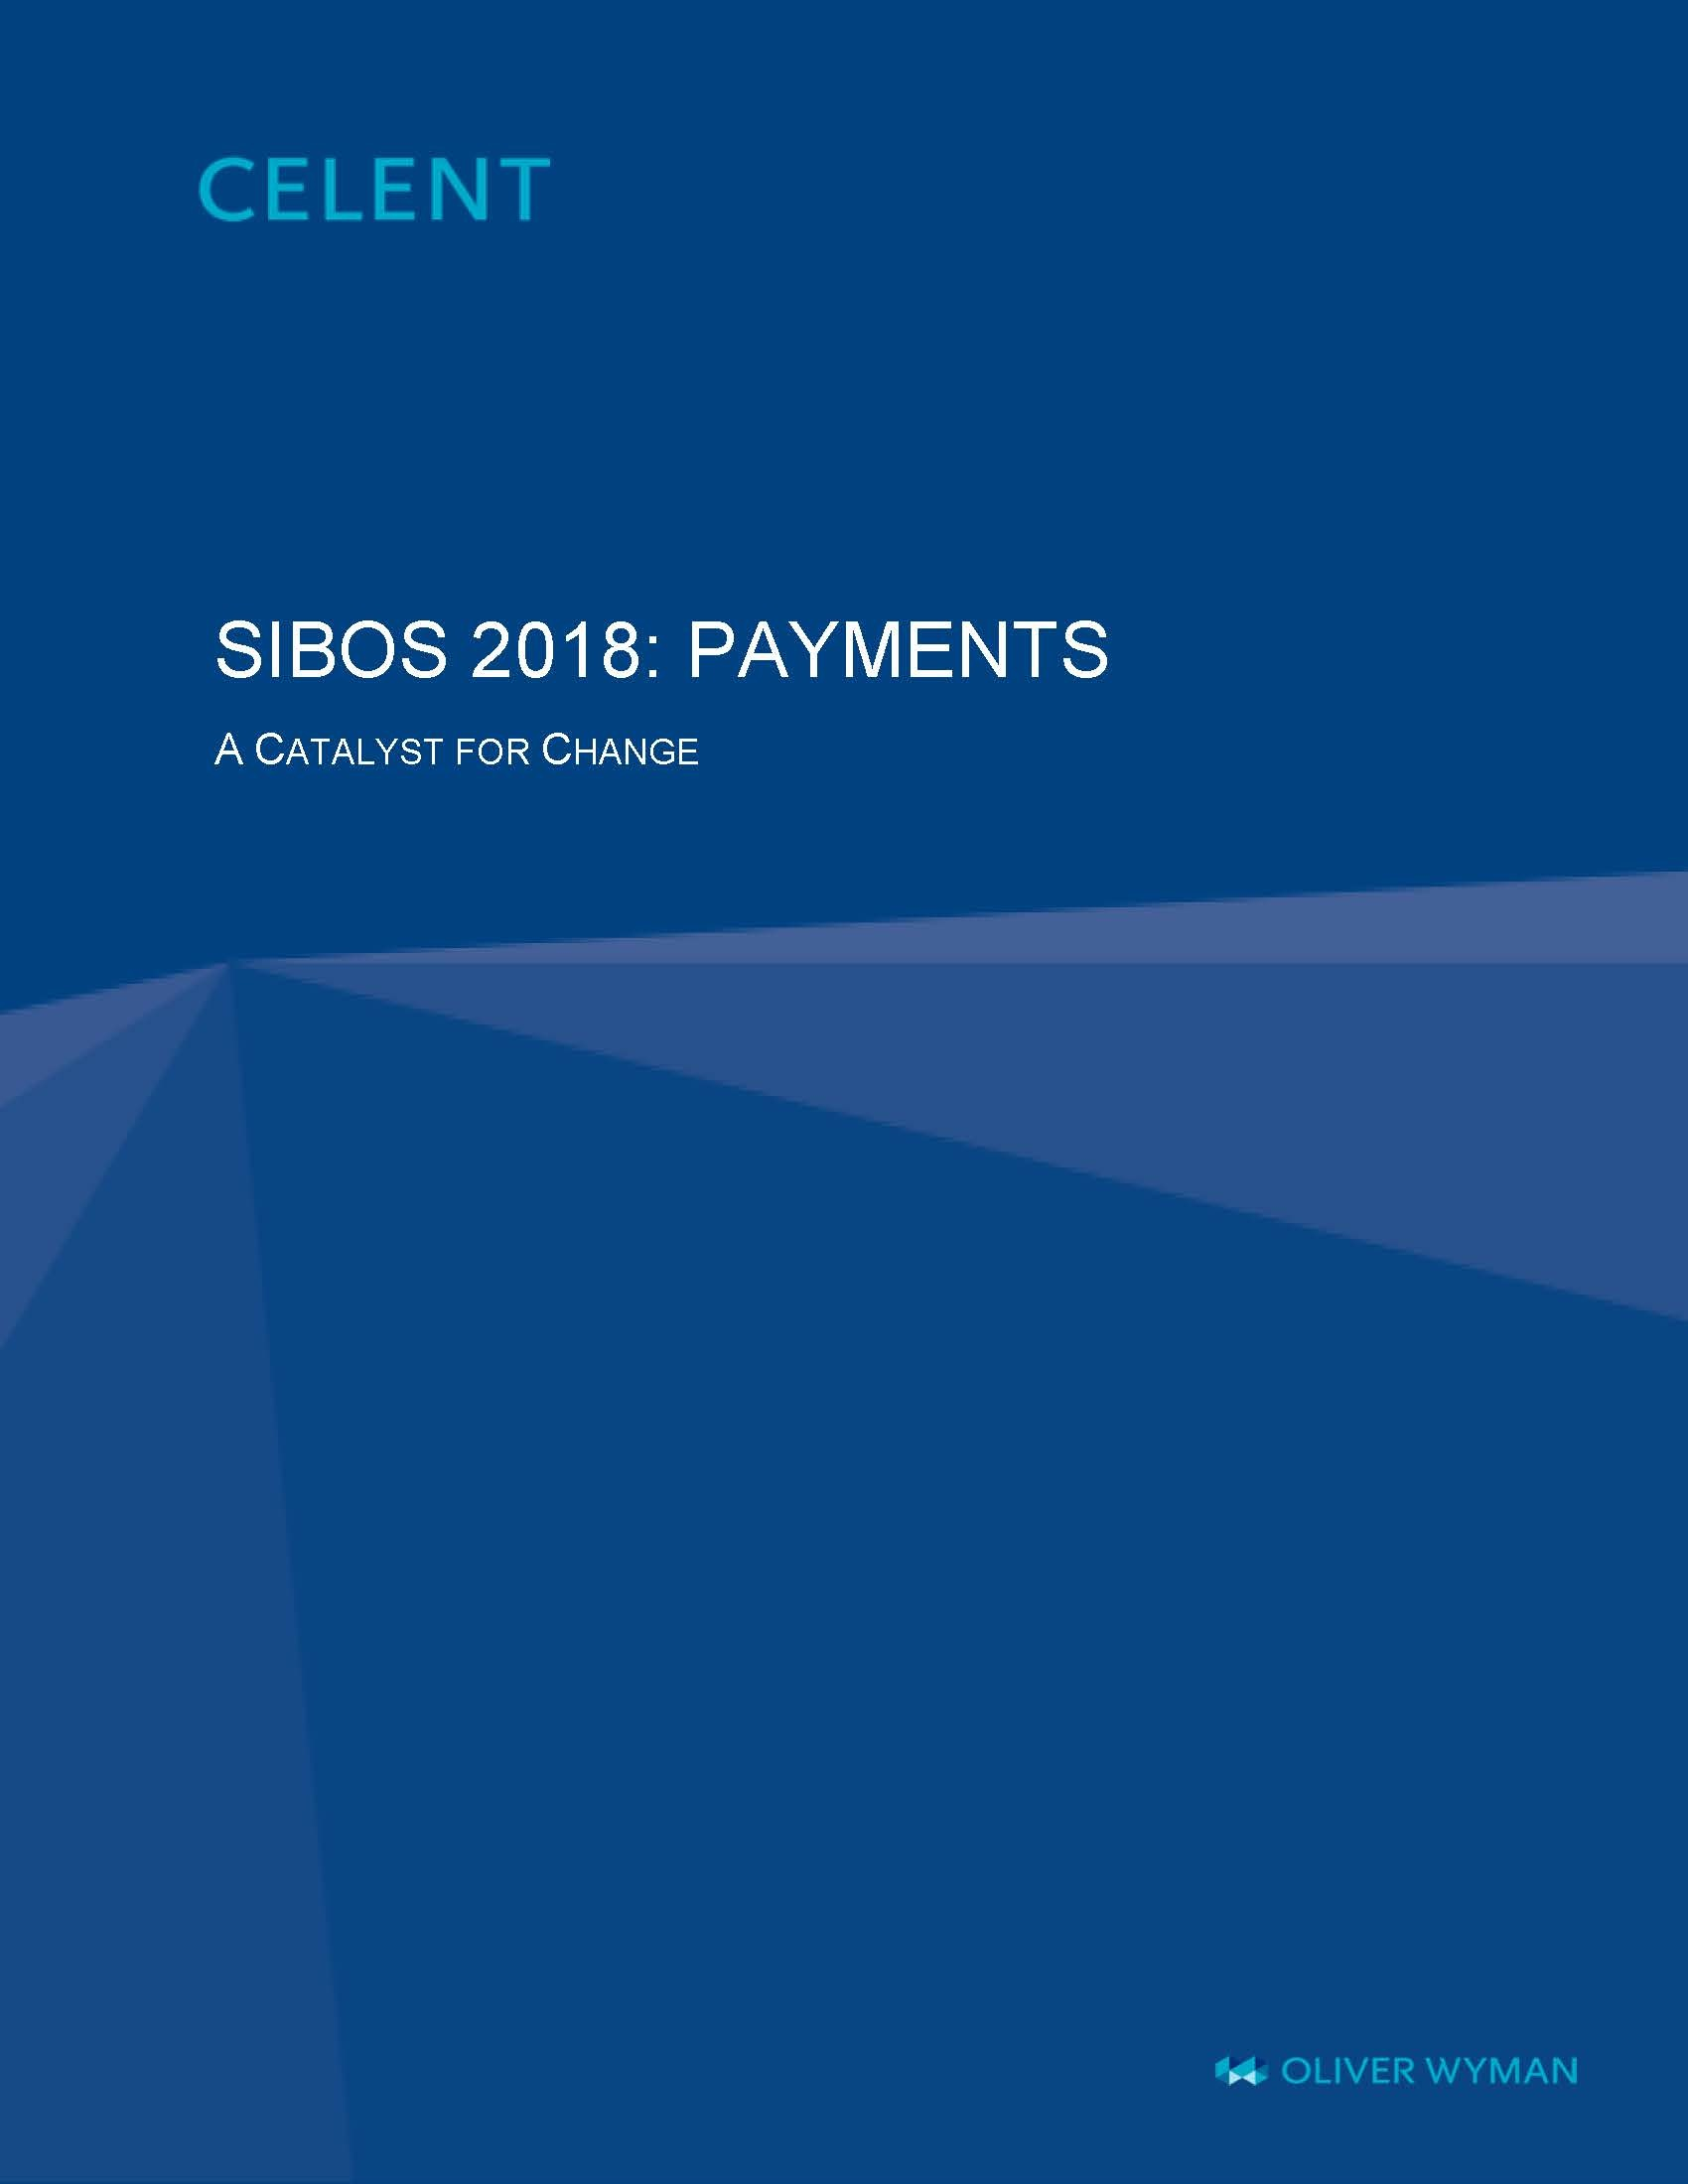 Sibos 2018 Payments